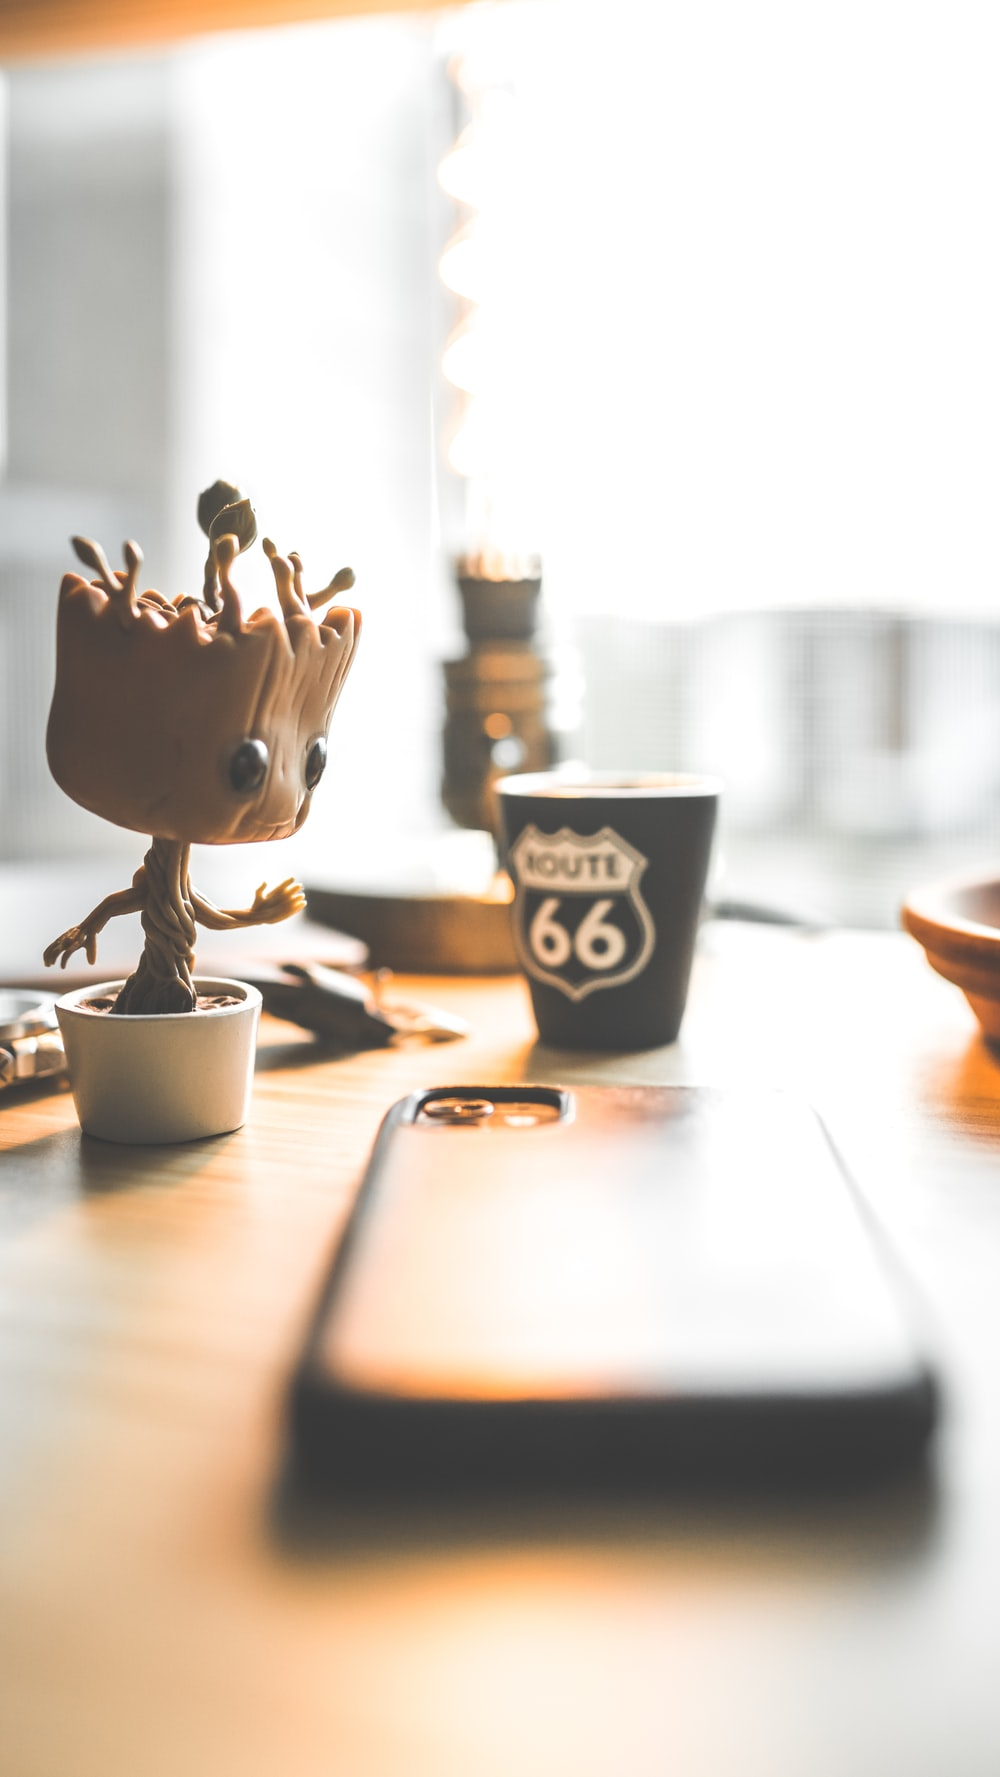 brown wooden animal figurine on brown wooden table